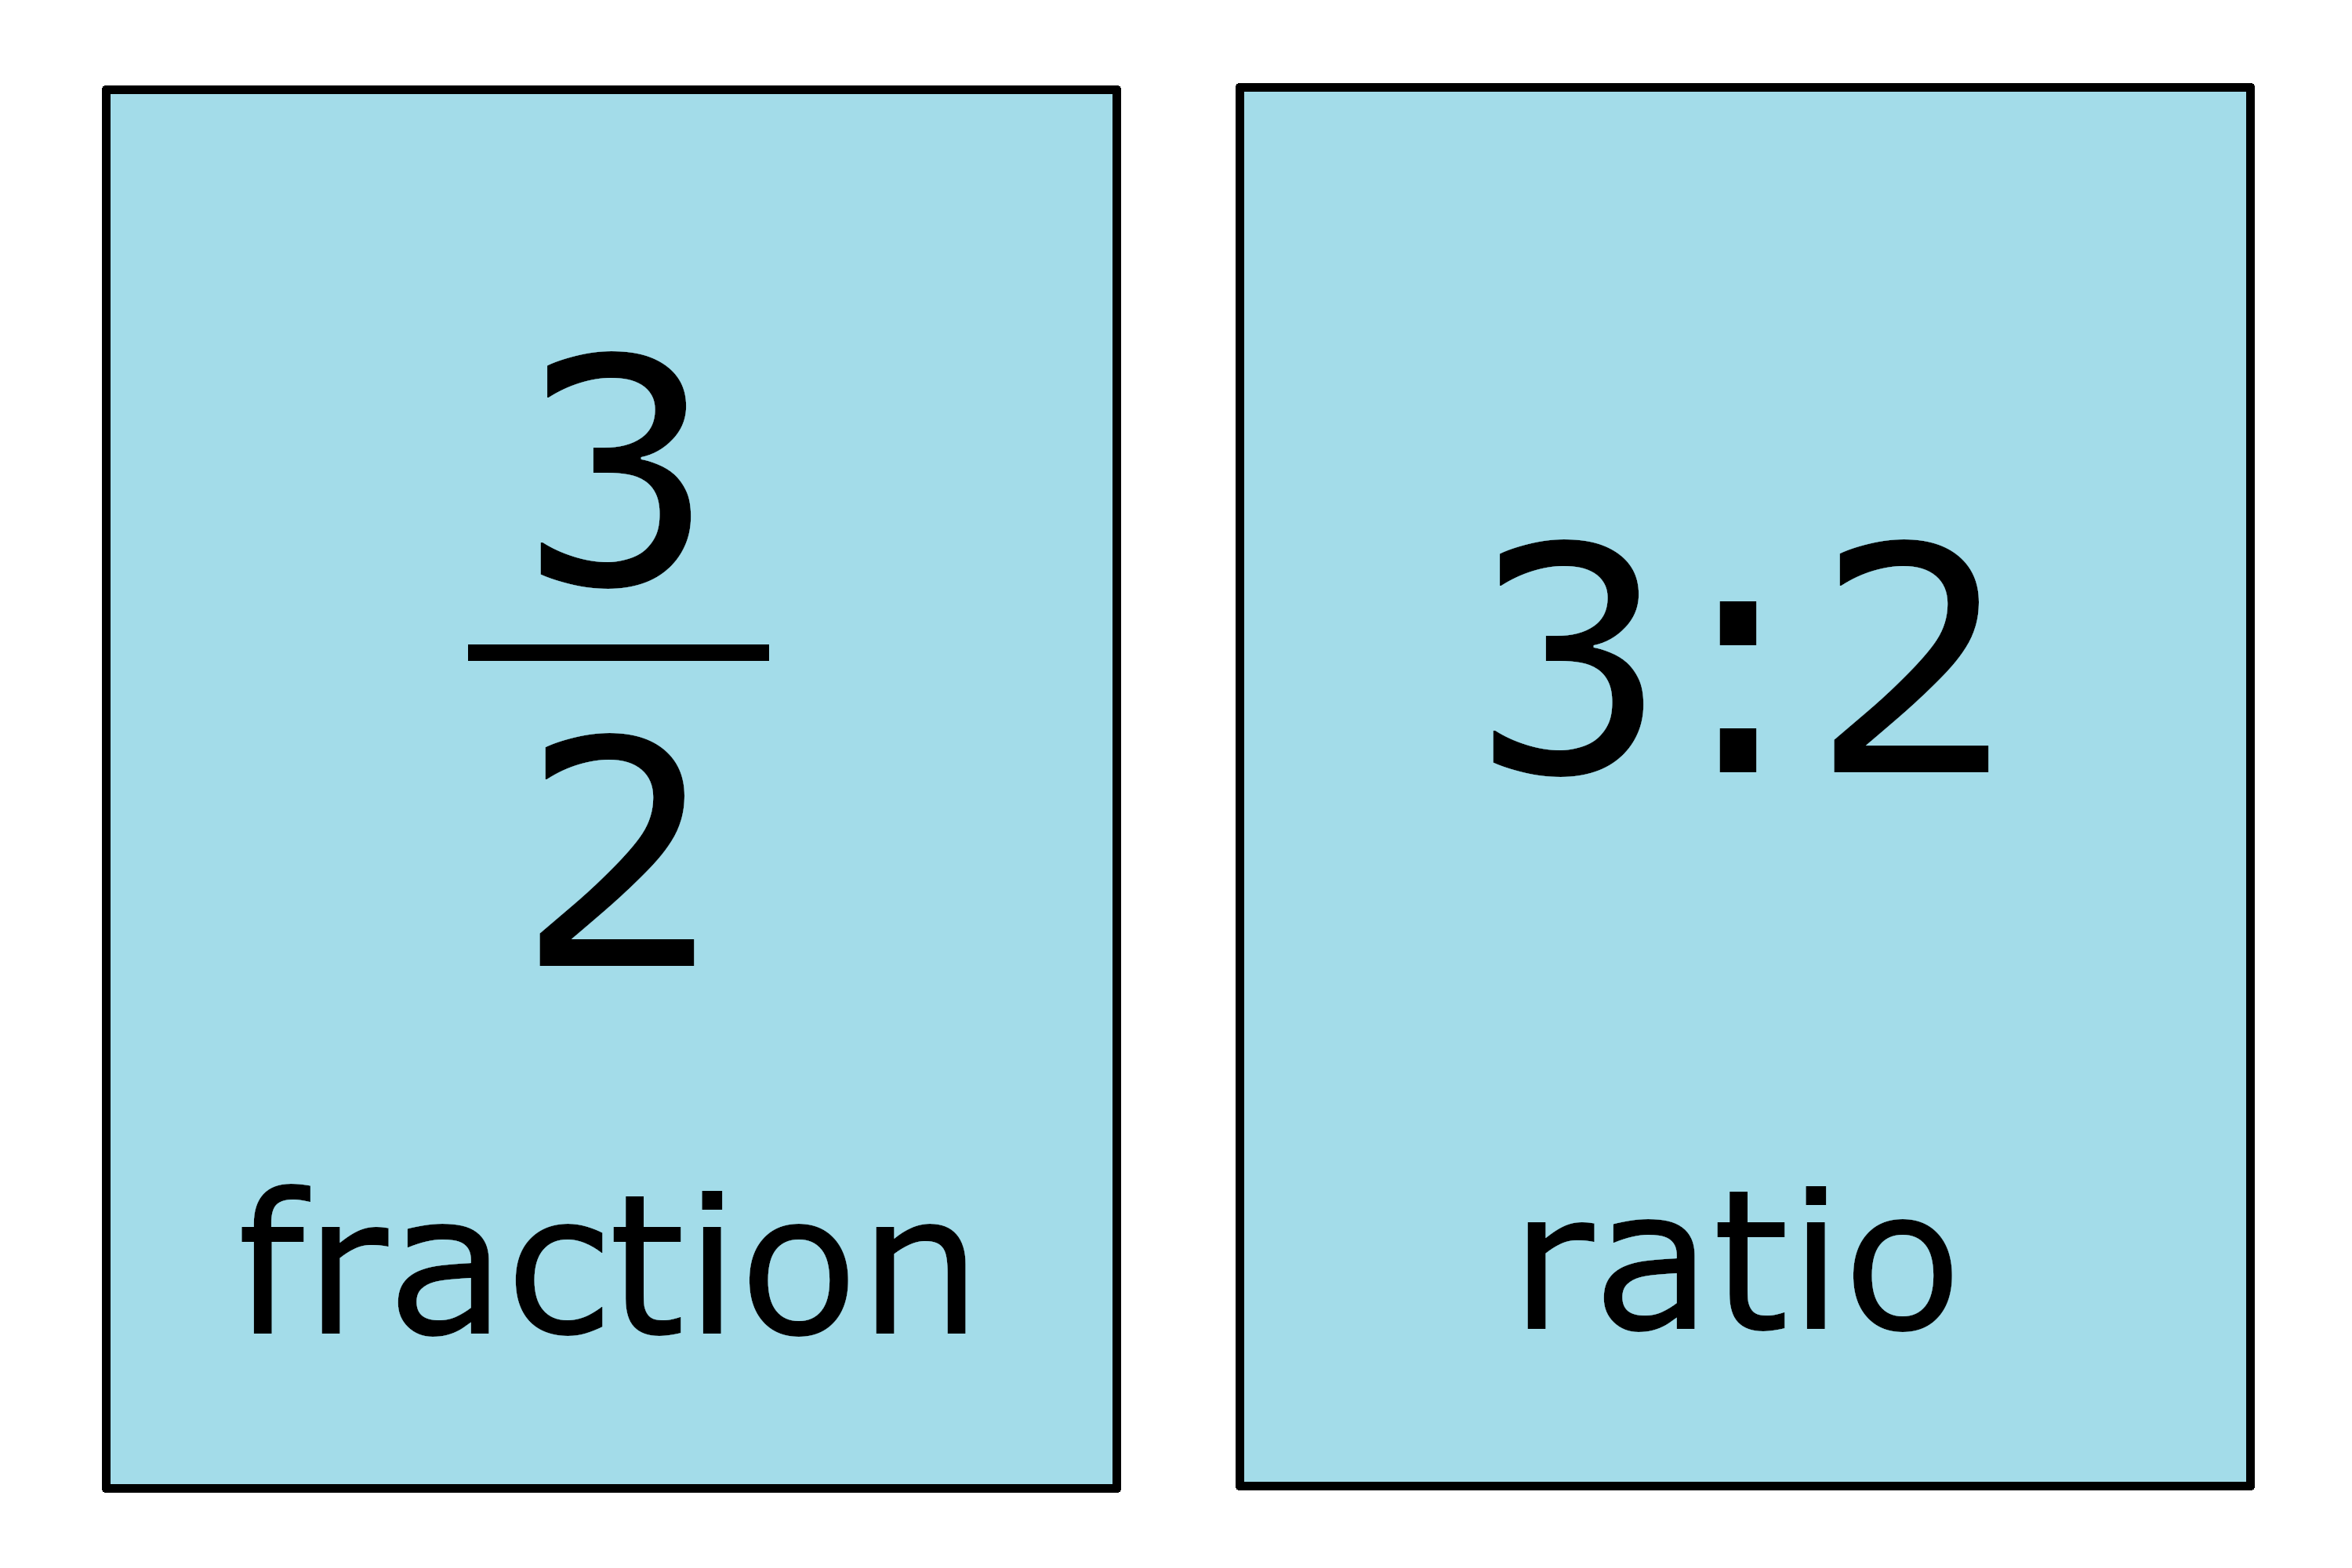 image showing the fraction 3/2 being equal to the ratio 3:2